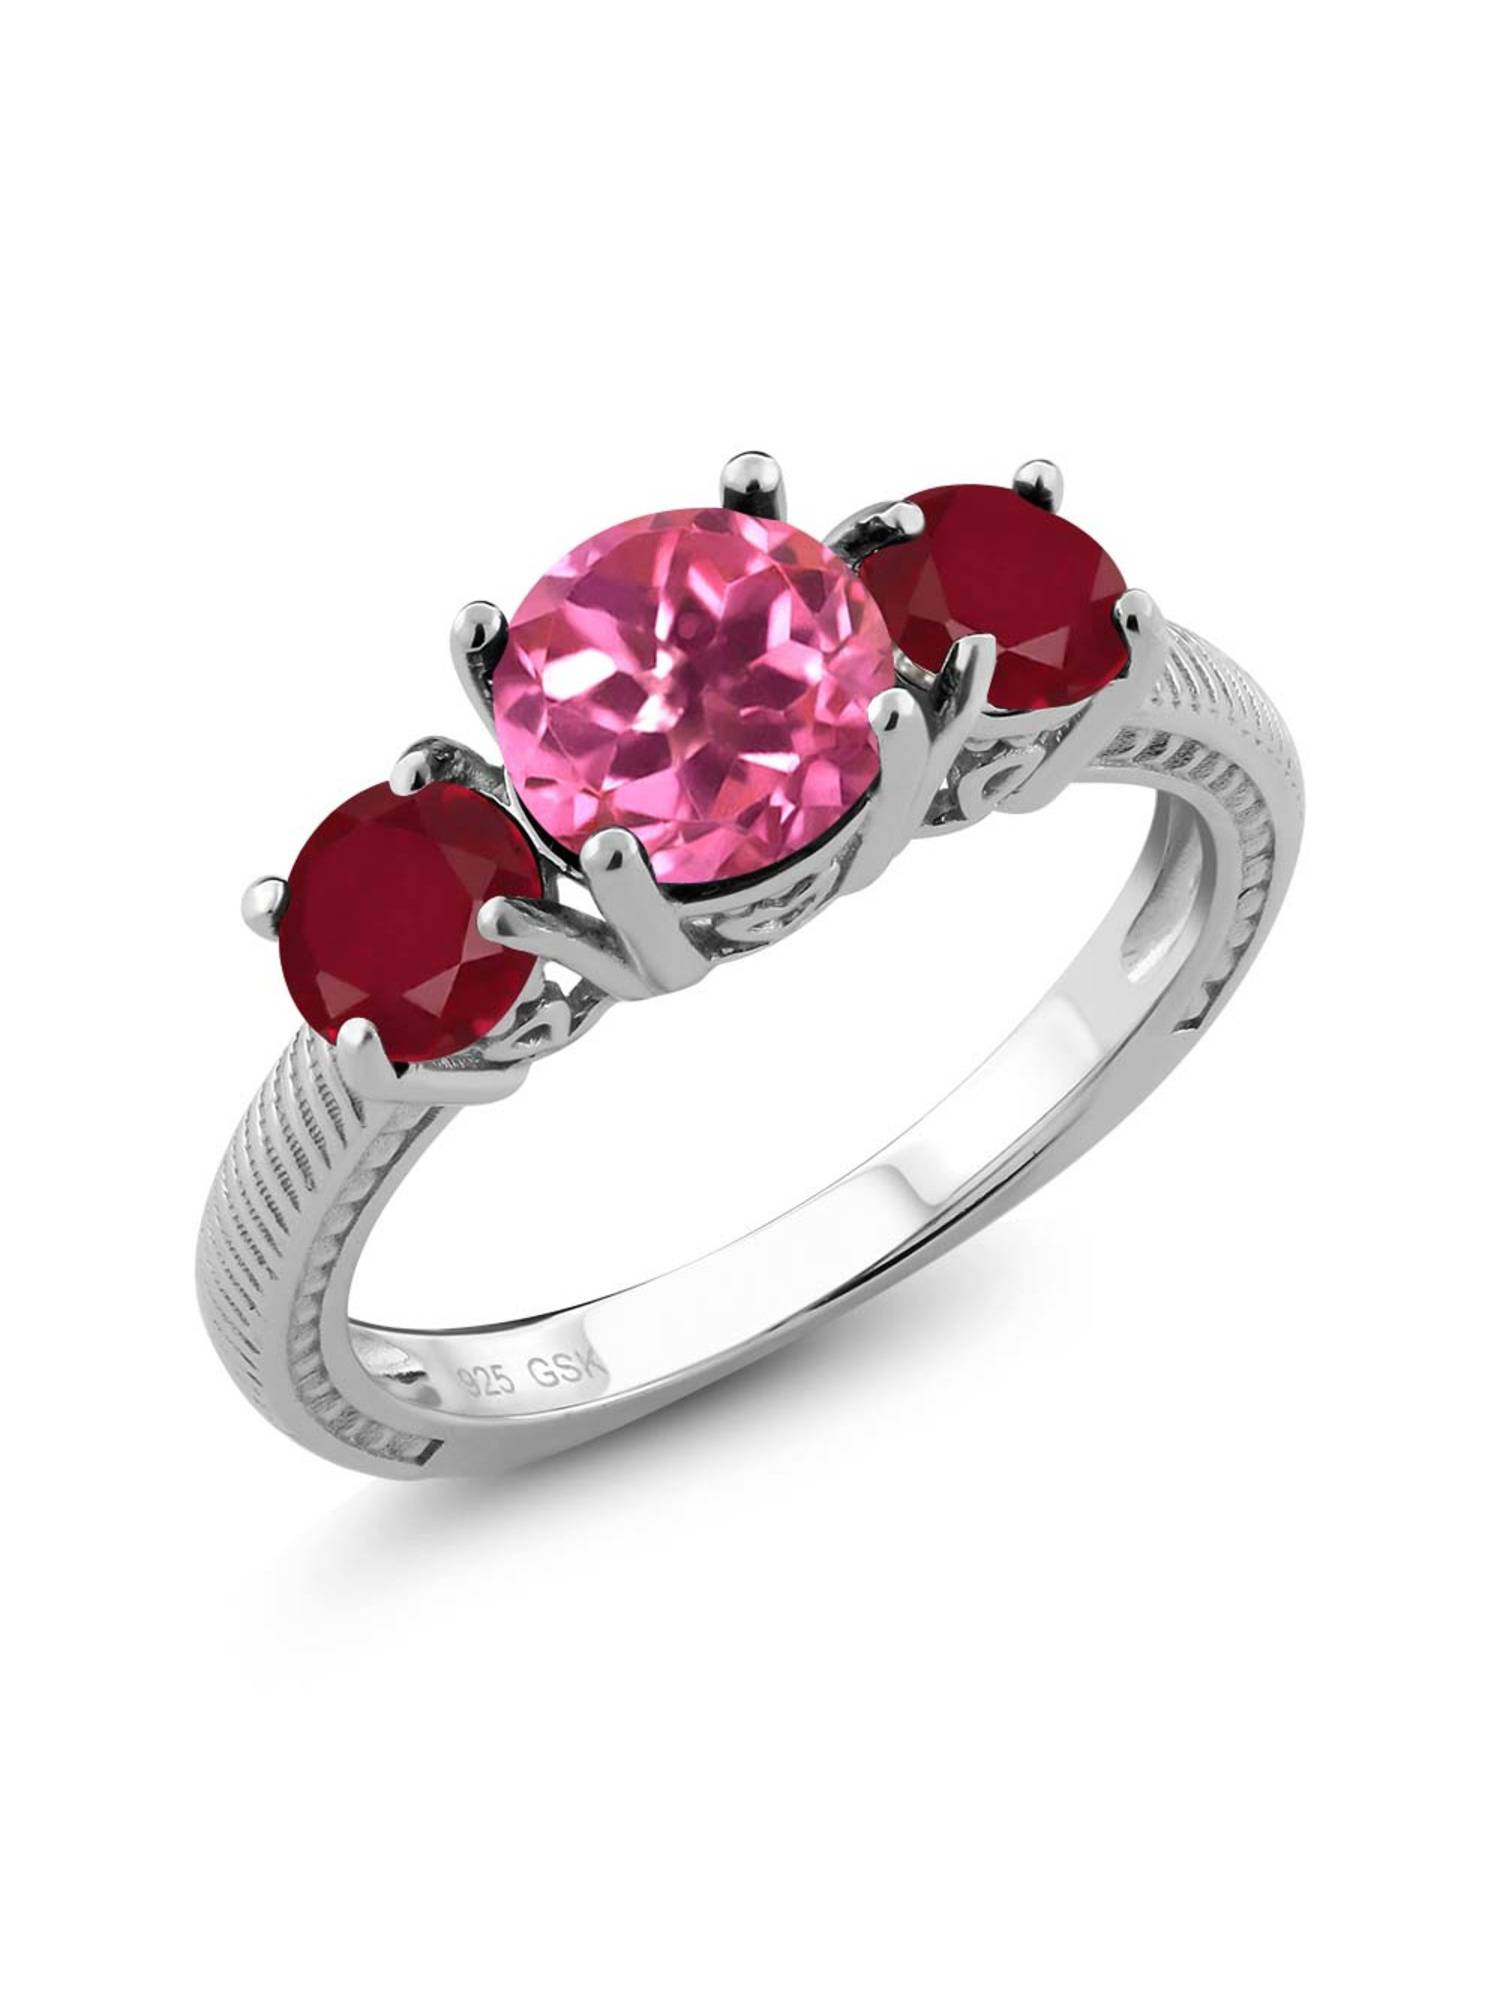 2.40 Ct Round Pink Mystic Topaz Red Ruby 925 Sterling Silver 3 Stone Ring by